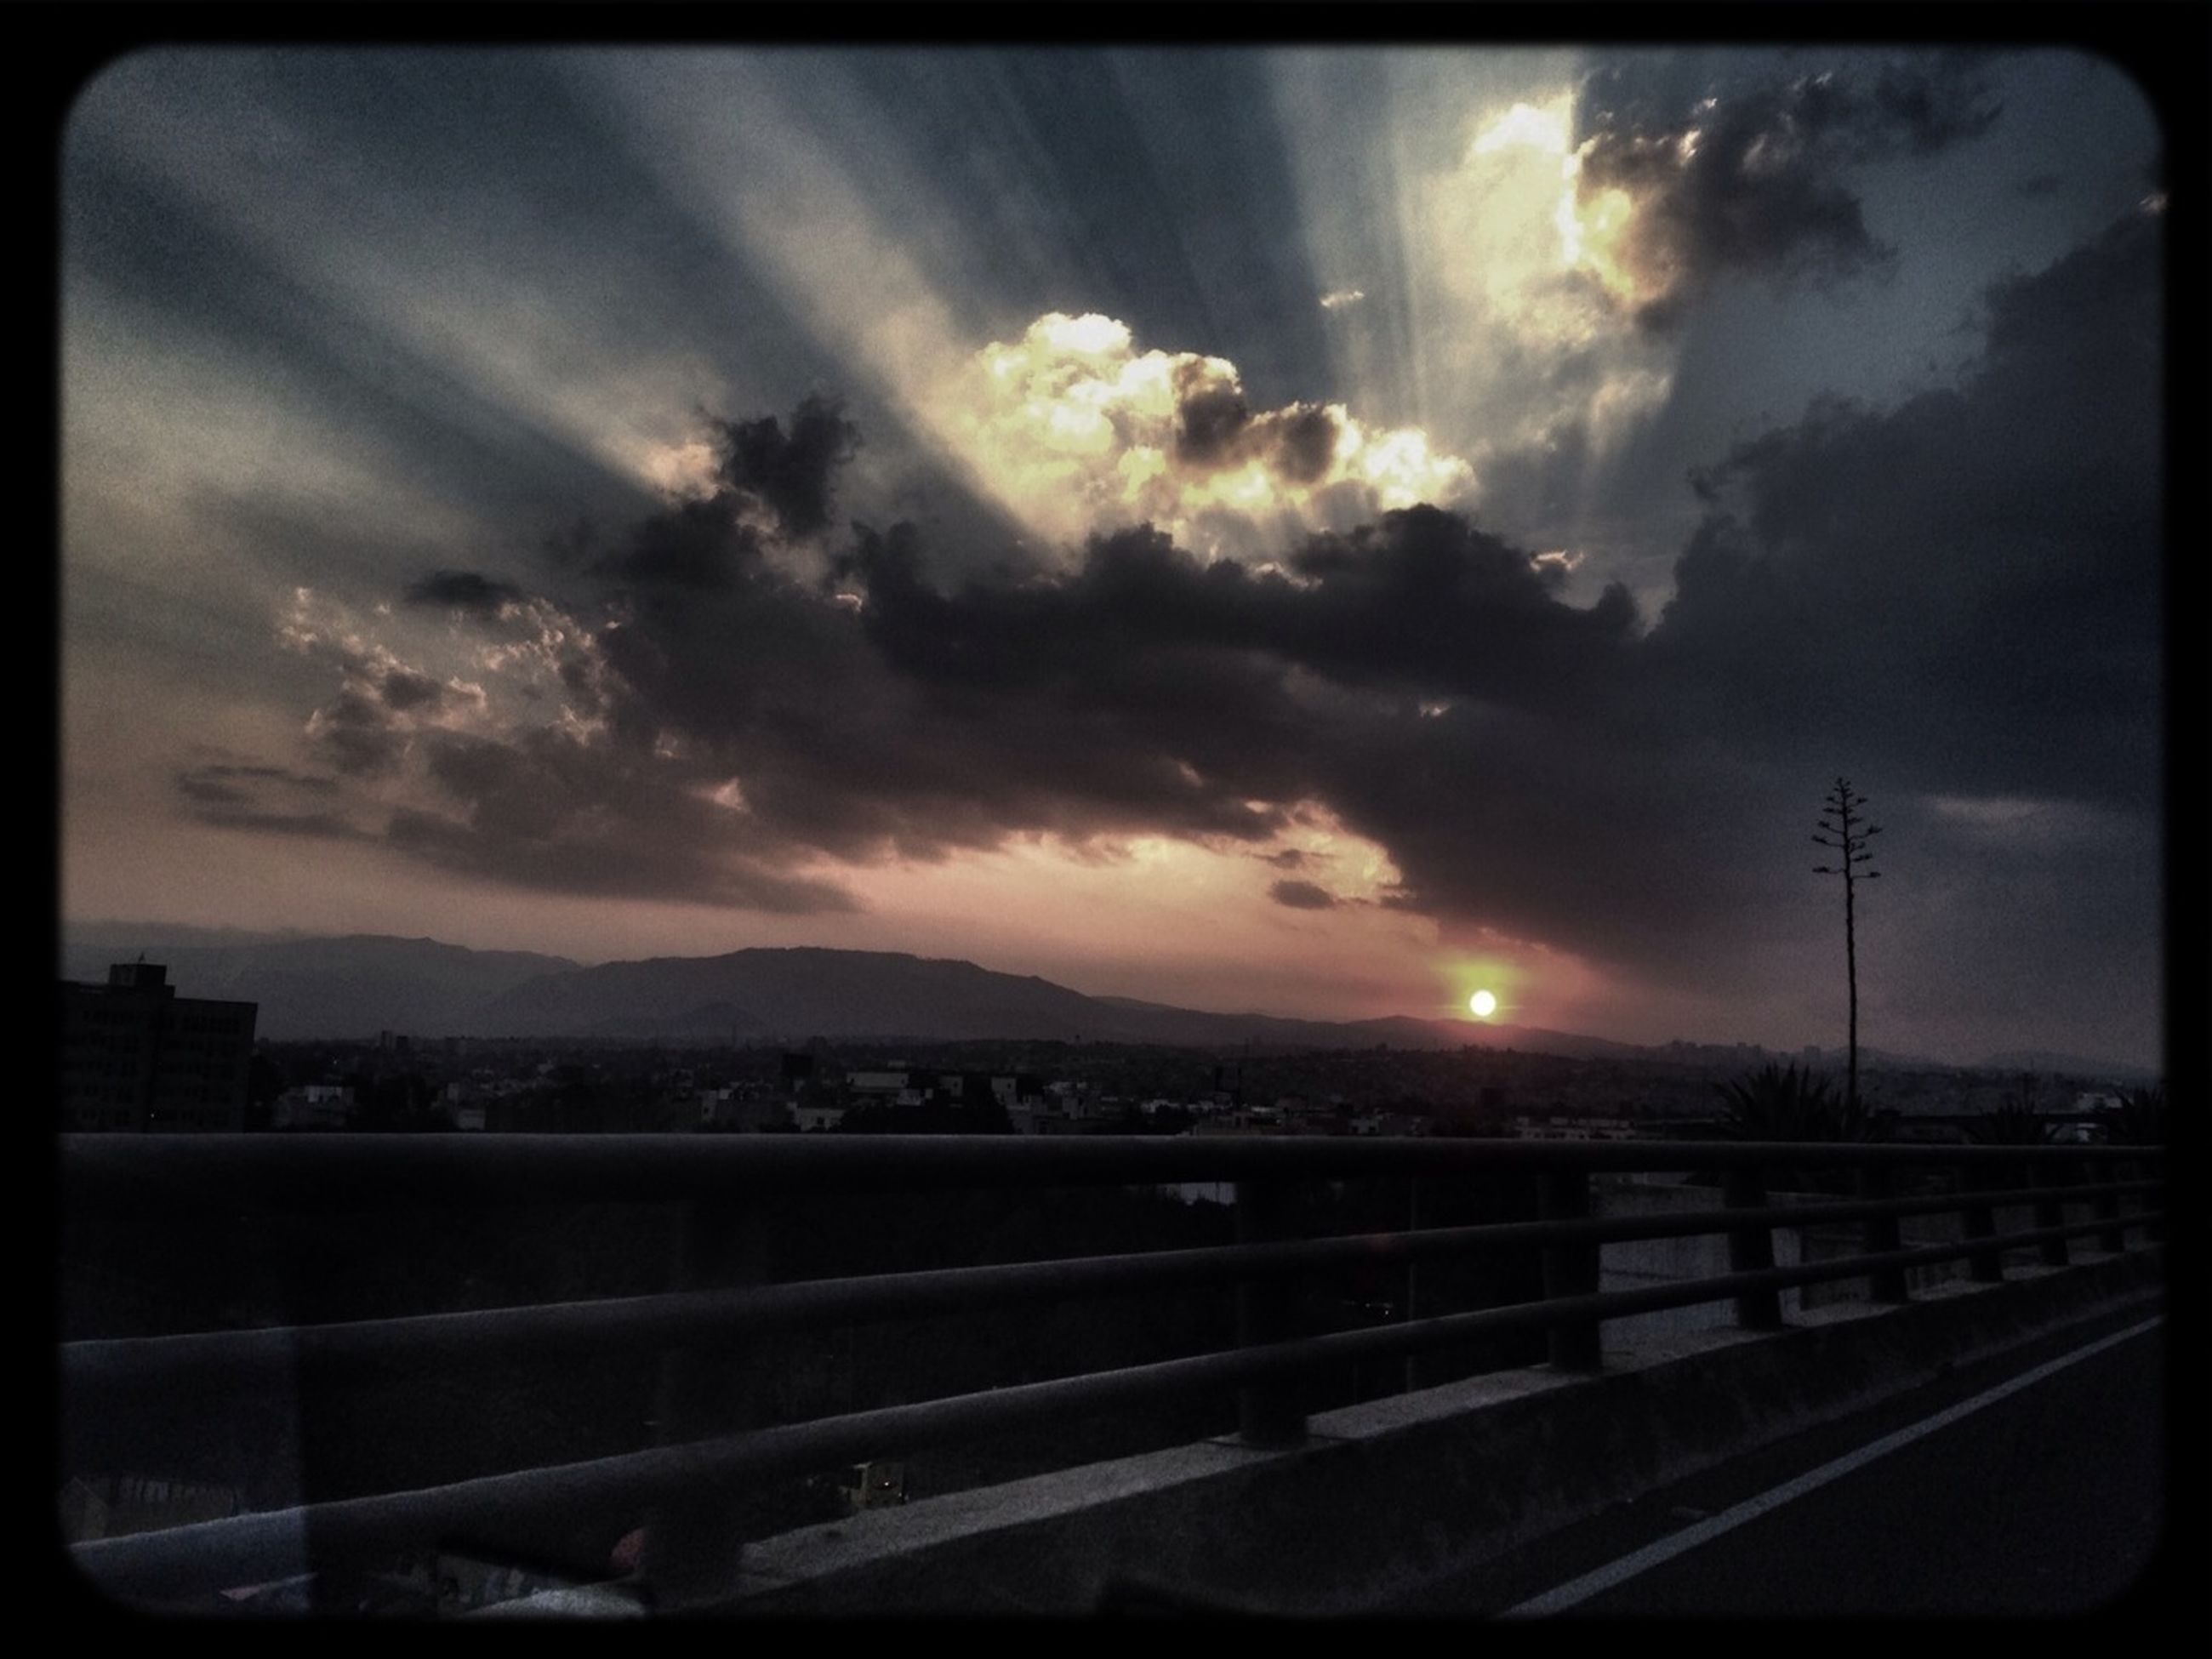 sky, transfer print, cloud - sky, cloudy, sunset, auto post production filter, street light, cloud, transportation, road, railing, scenics, dusk, nature, mountain, beauty in nature, connection, weather, dramatic sky, overcast